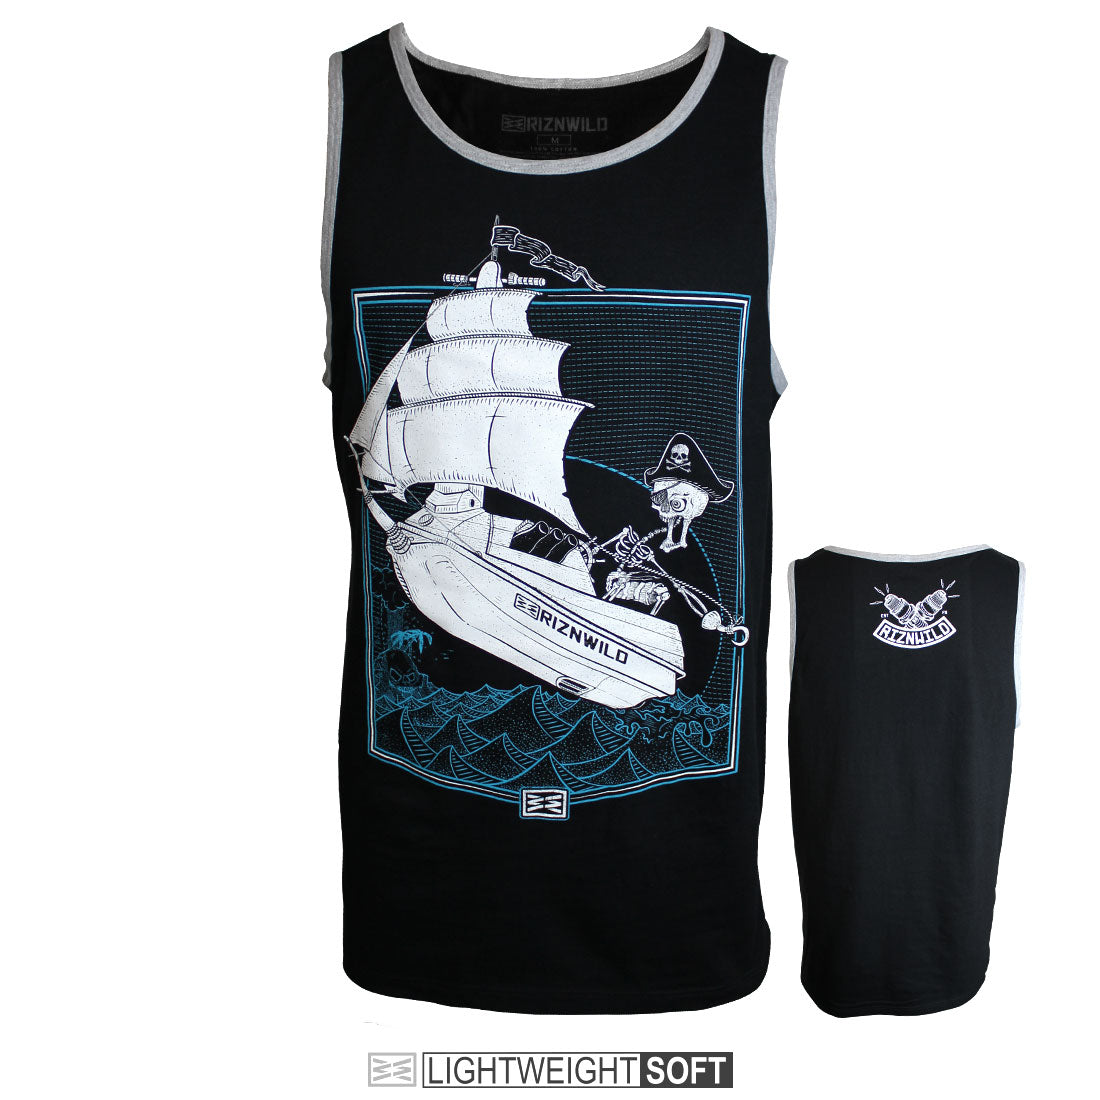 RIZNWILD | Men's tank top black soft jet ski design